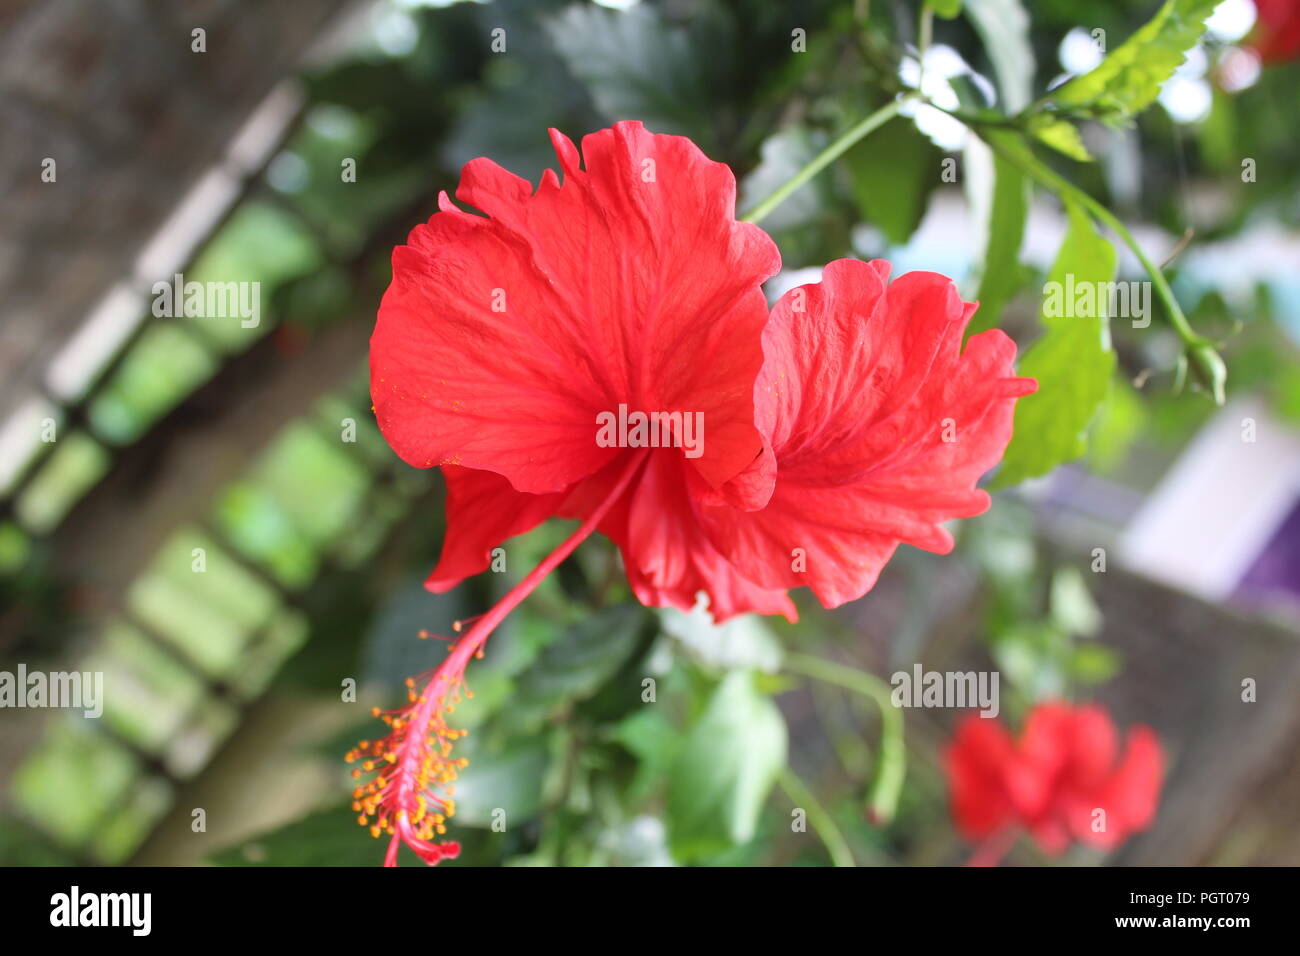 Red hibiscus flower texture background. - Stock Image